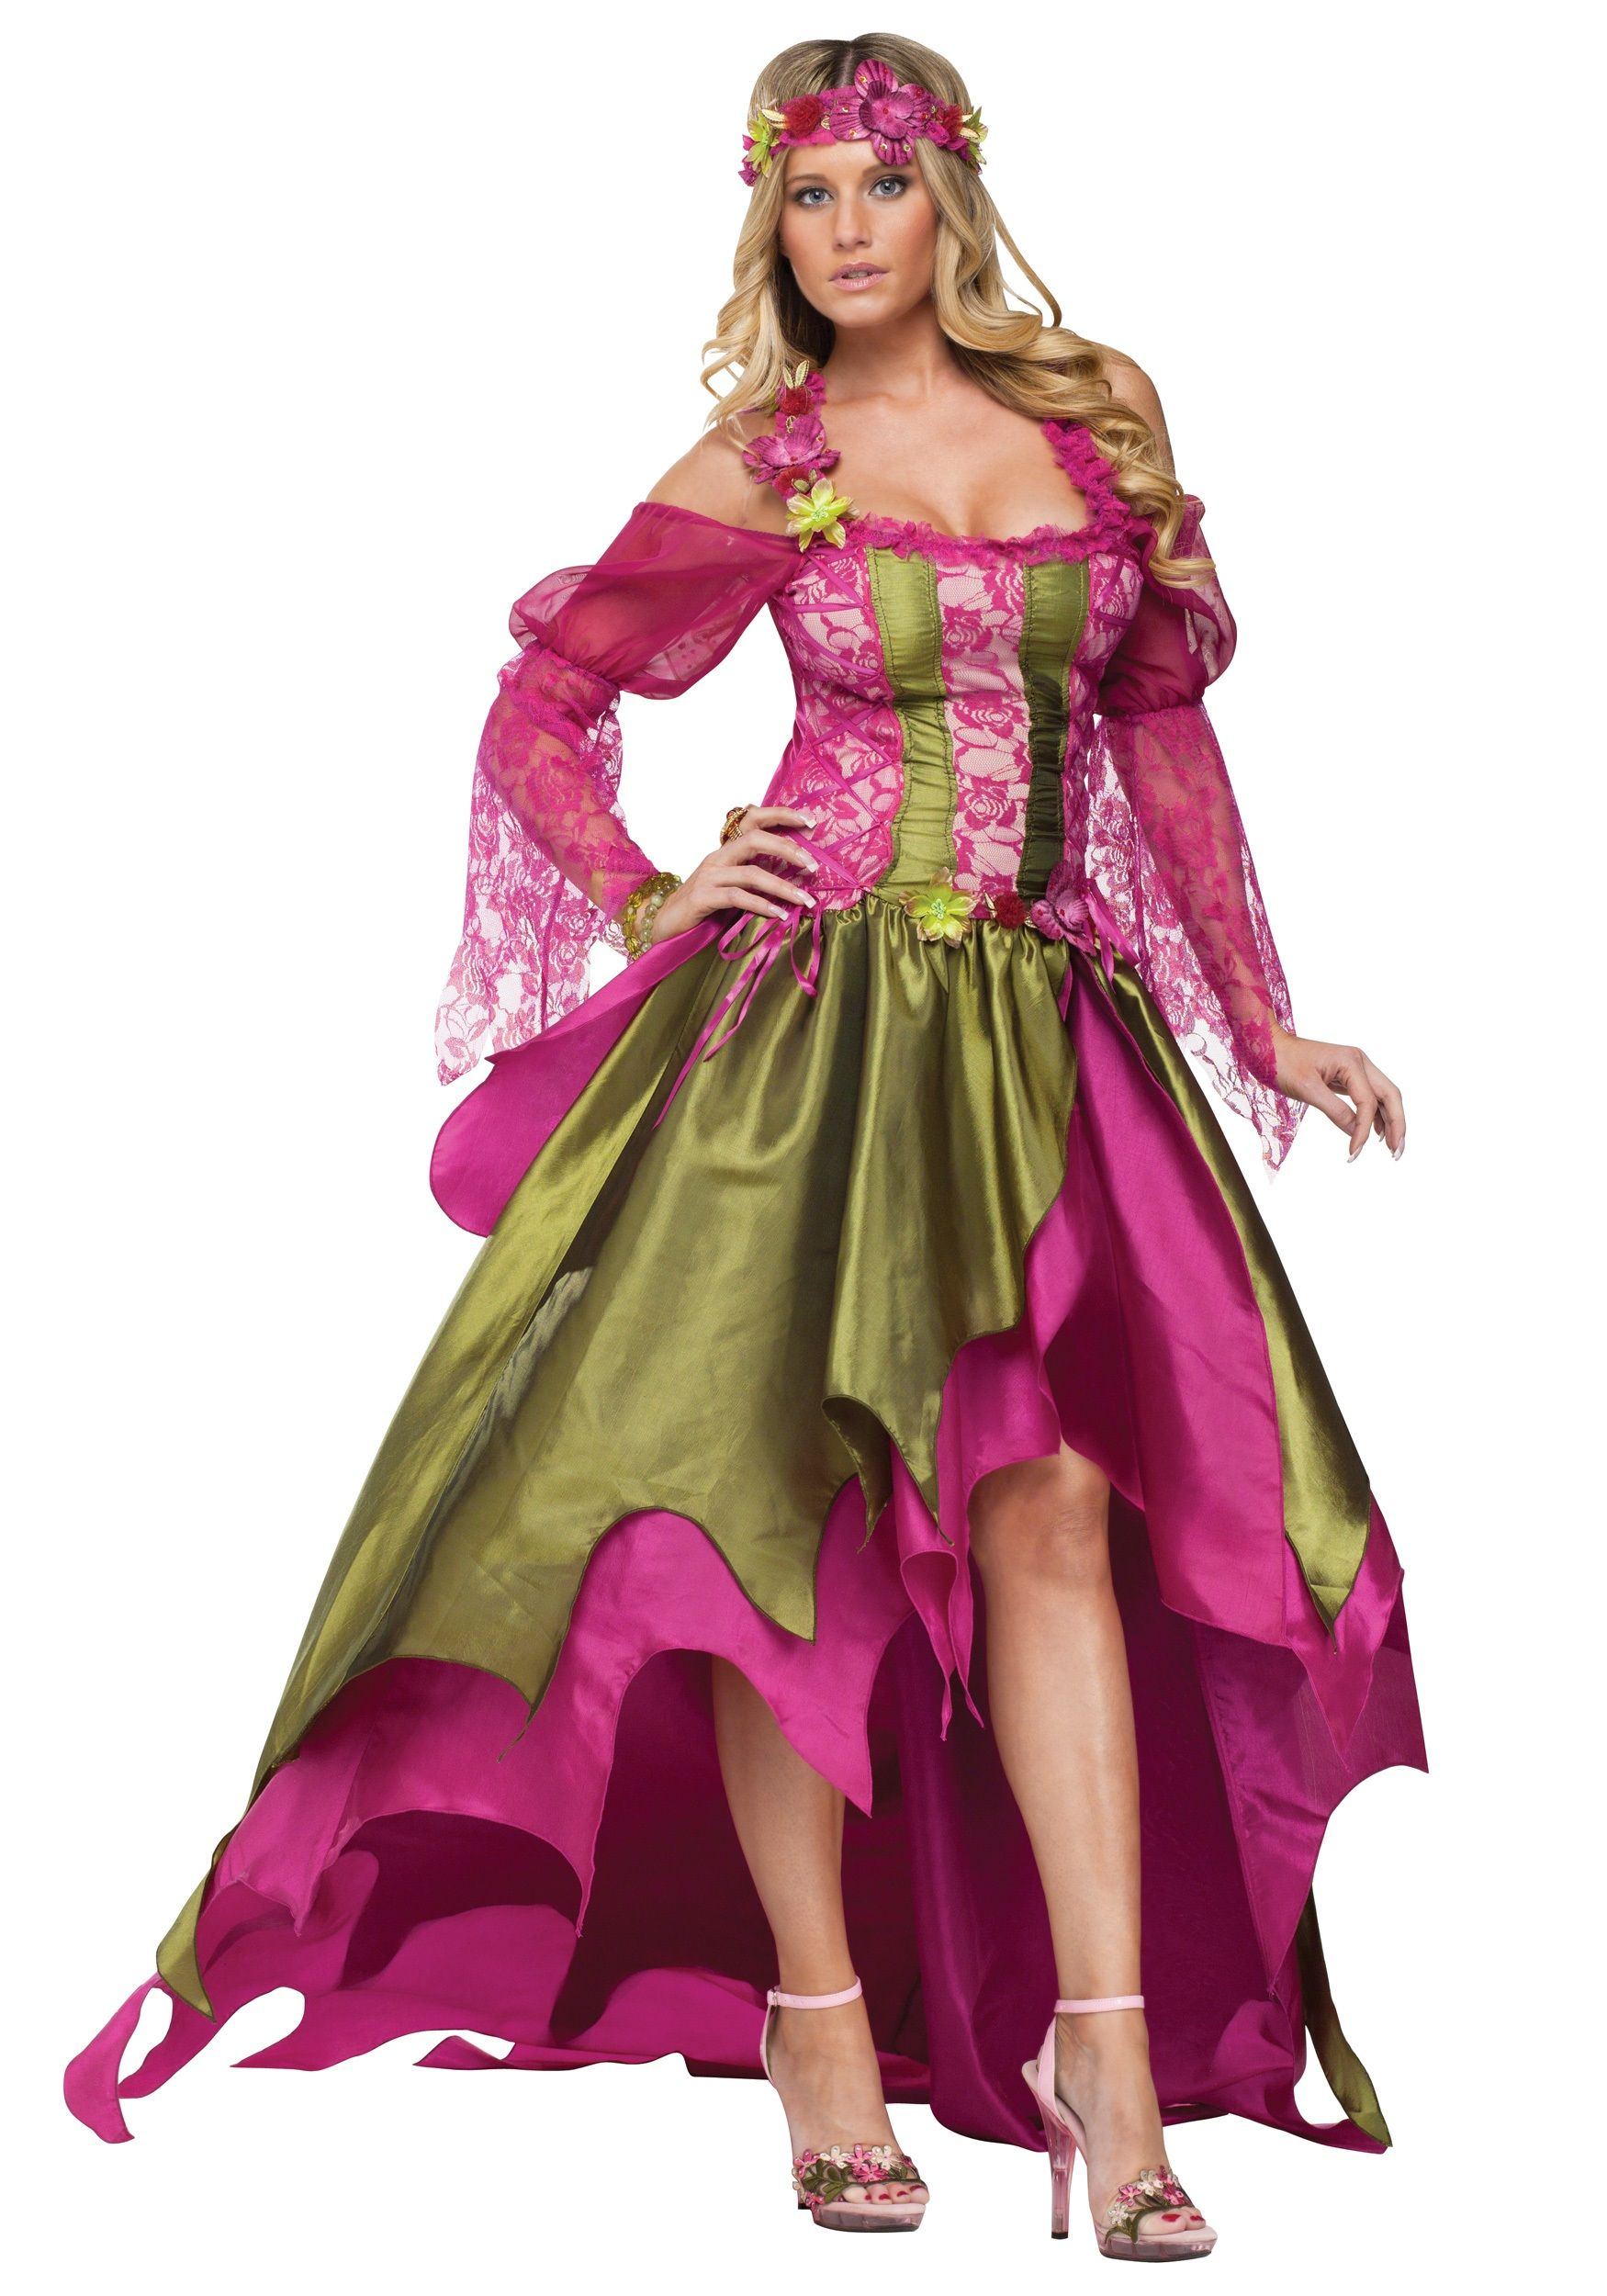 989c5756a Adult Plus Size Fairy Queen Costume | Costumes | Queen costume ...